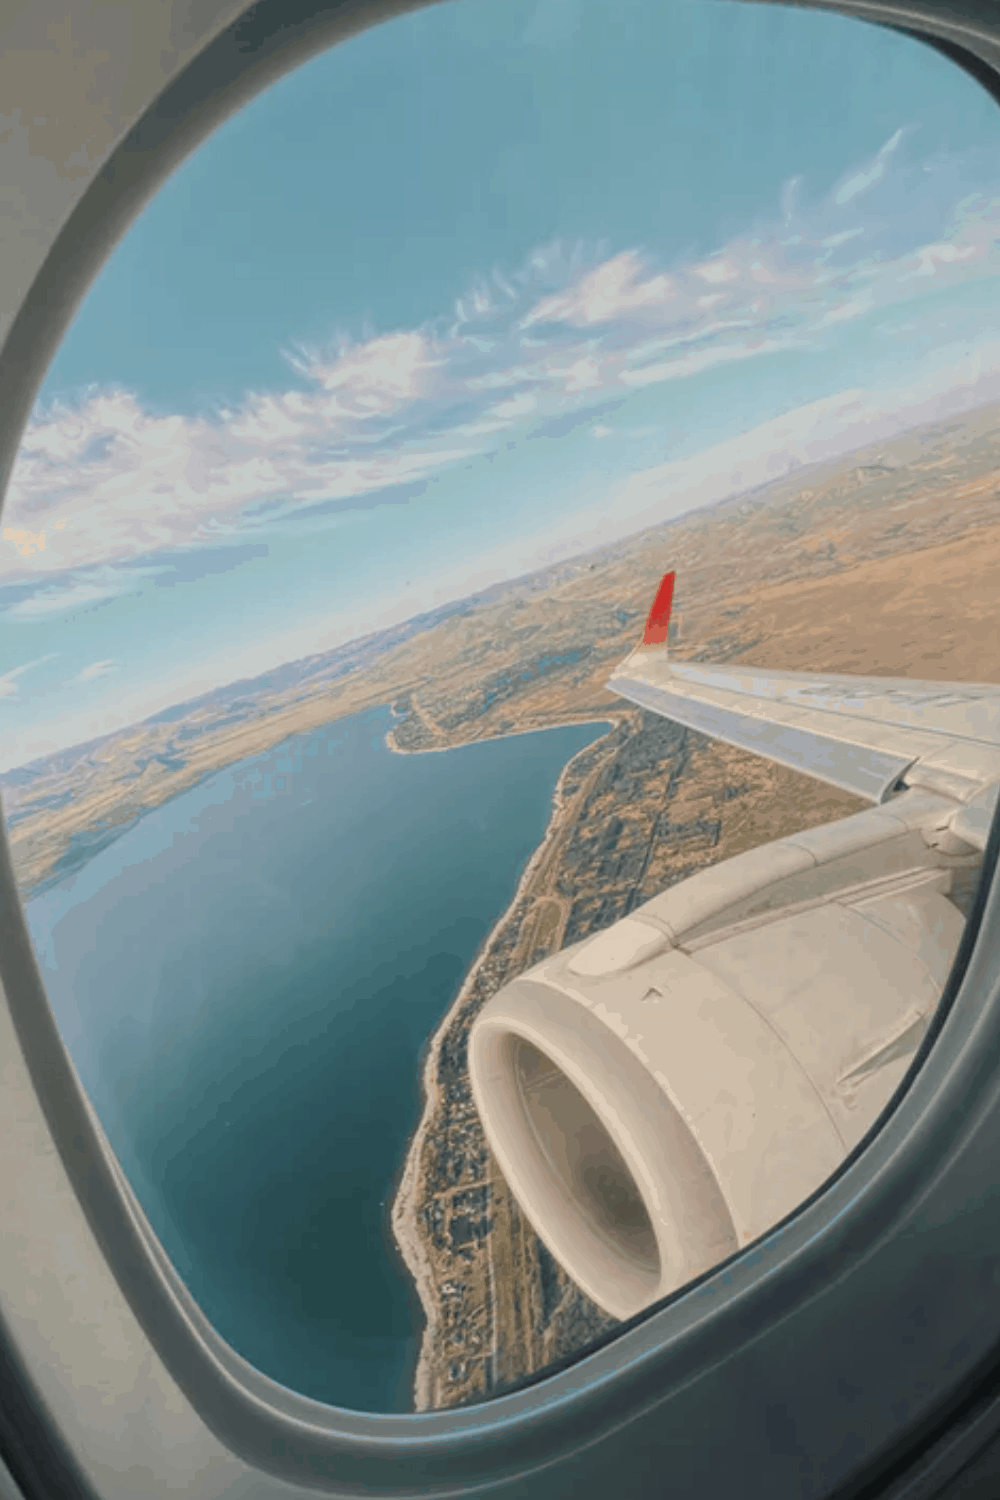 View from an airplane window looking out to water & land from the sky.